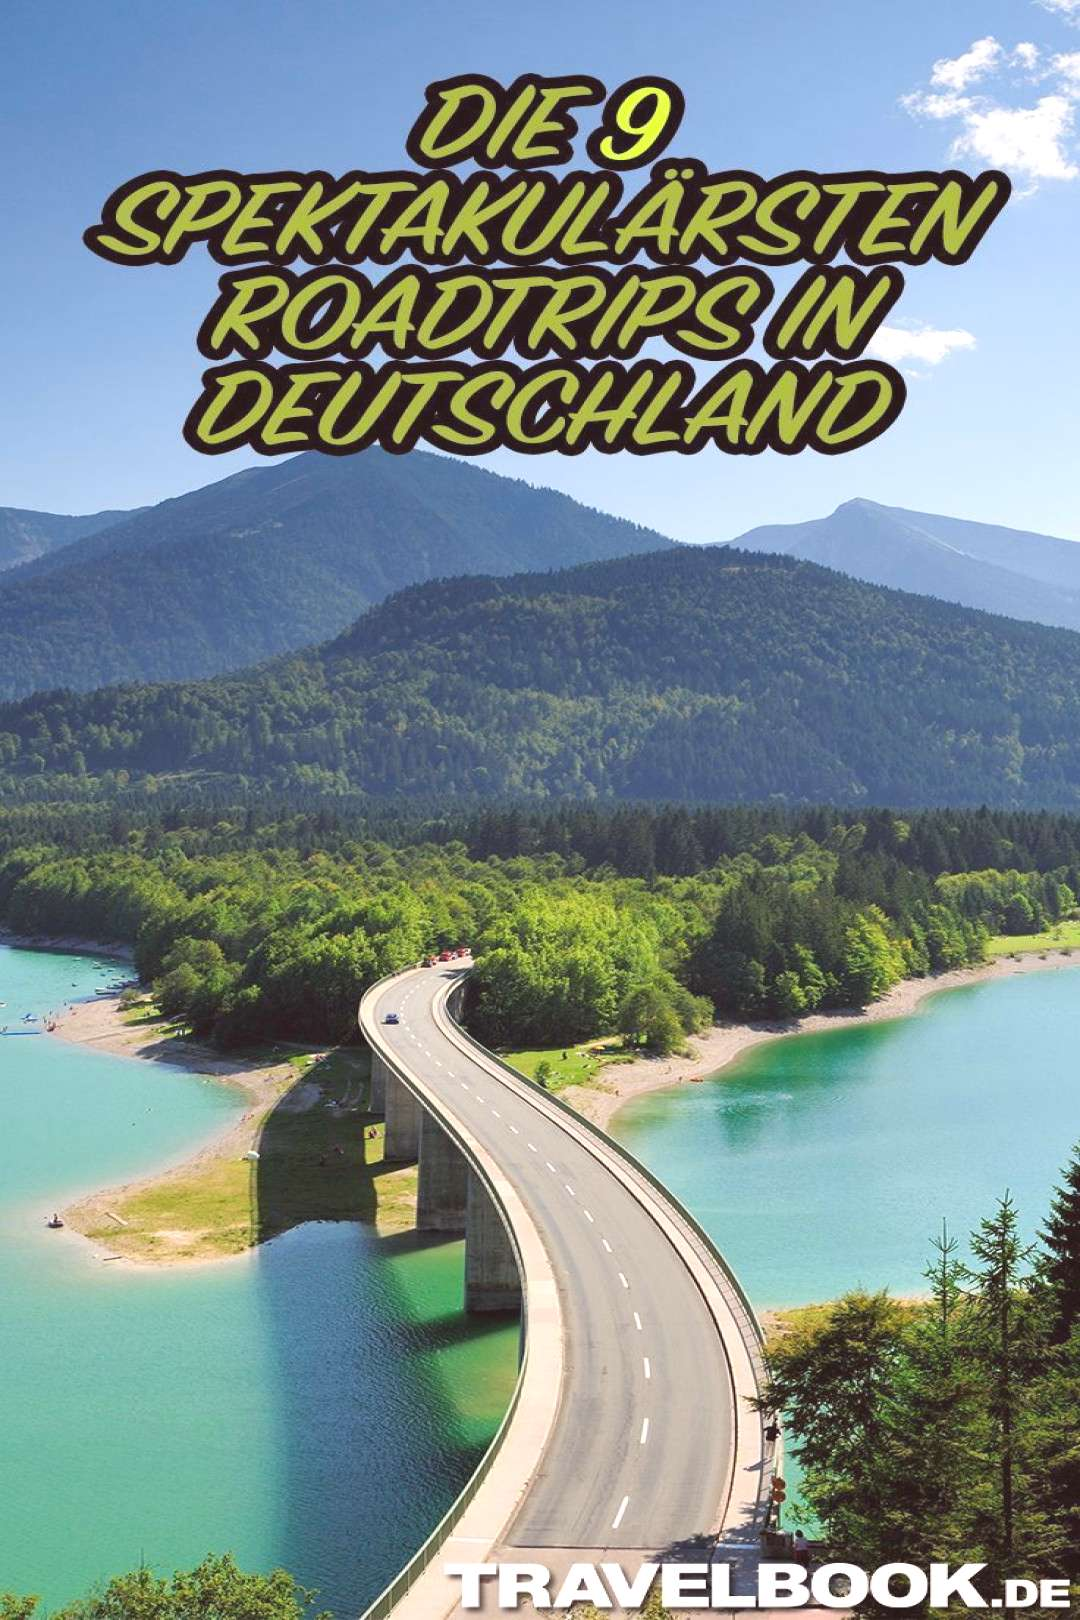 The 9 most spectacular road trips in Germany The 9 most spectacular road trips in Germany